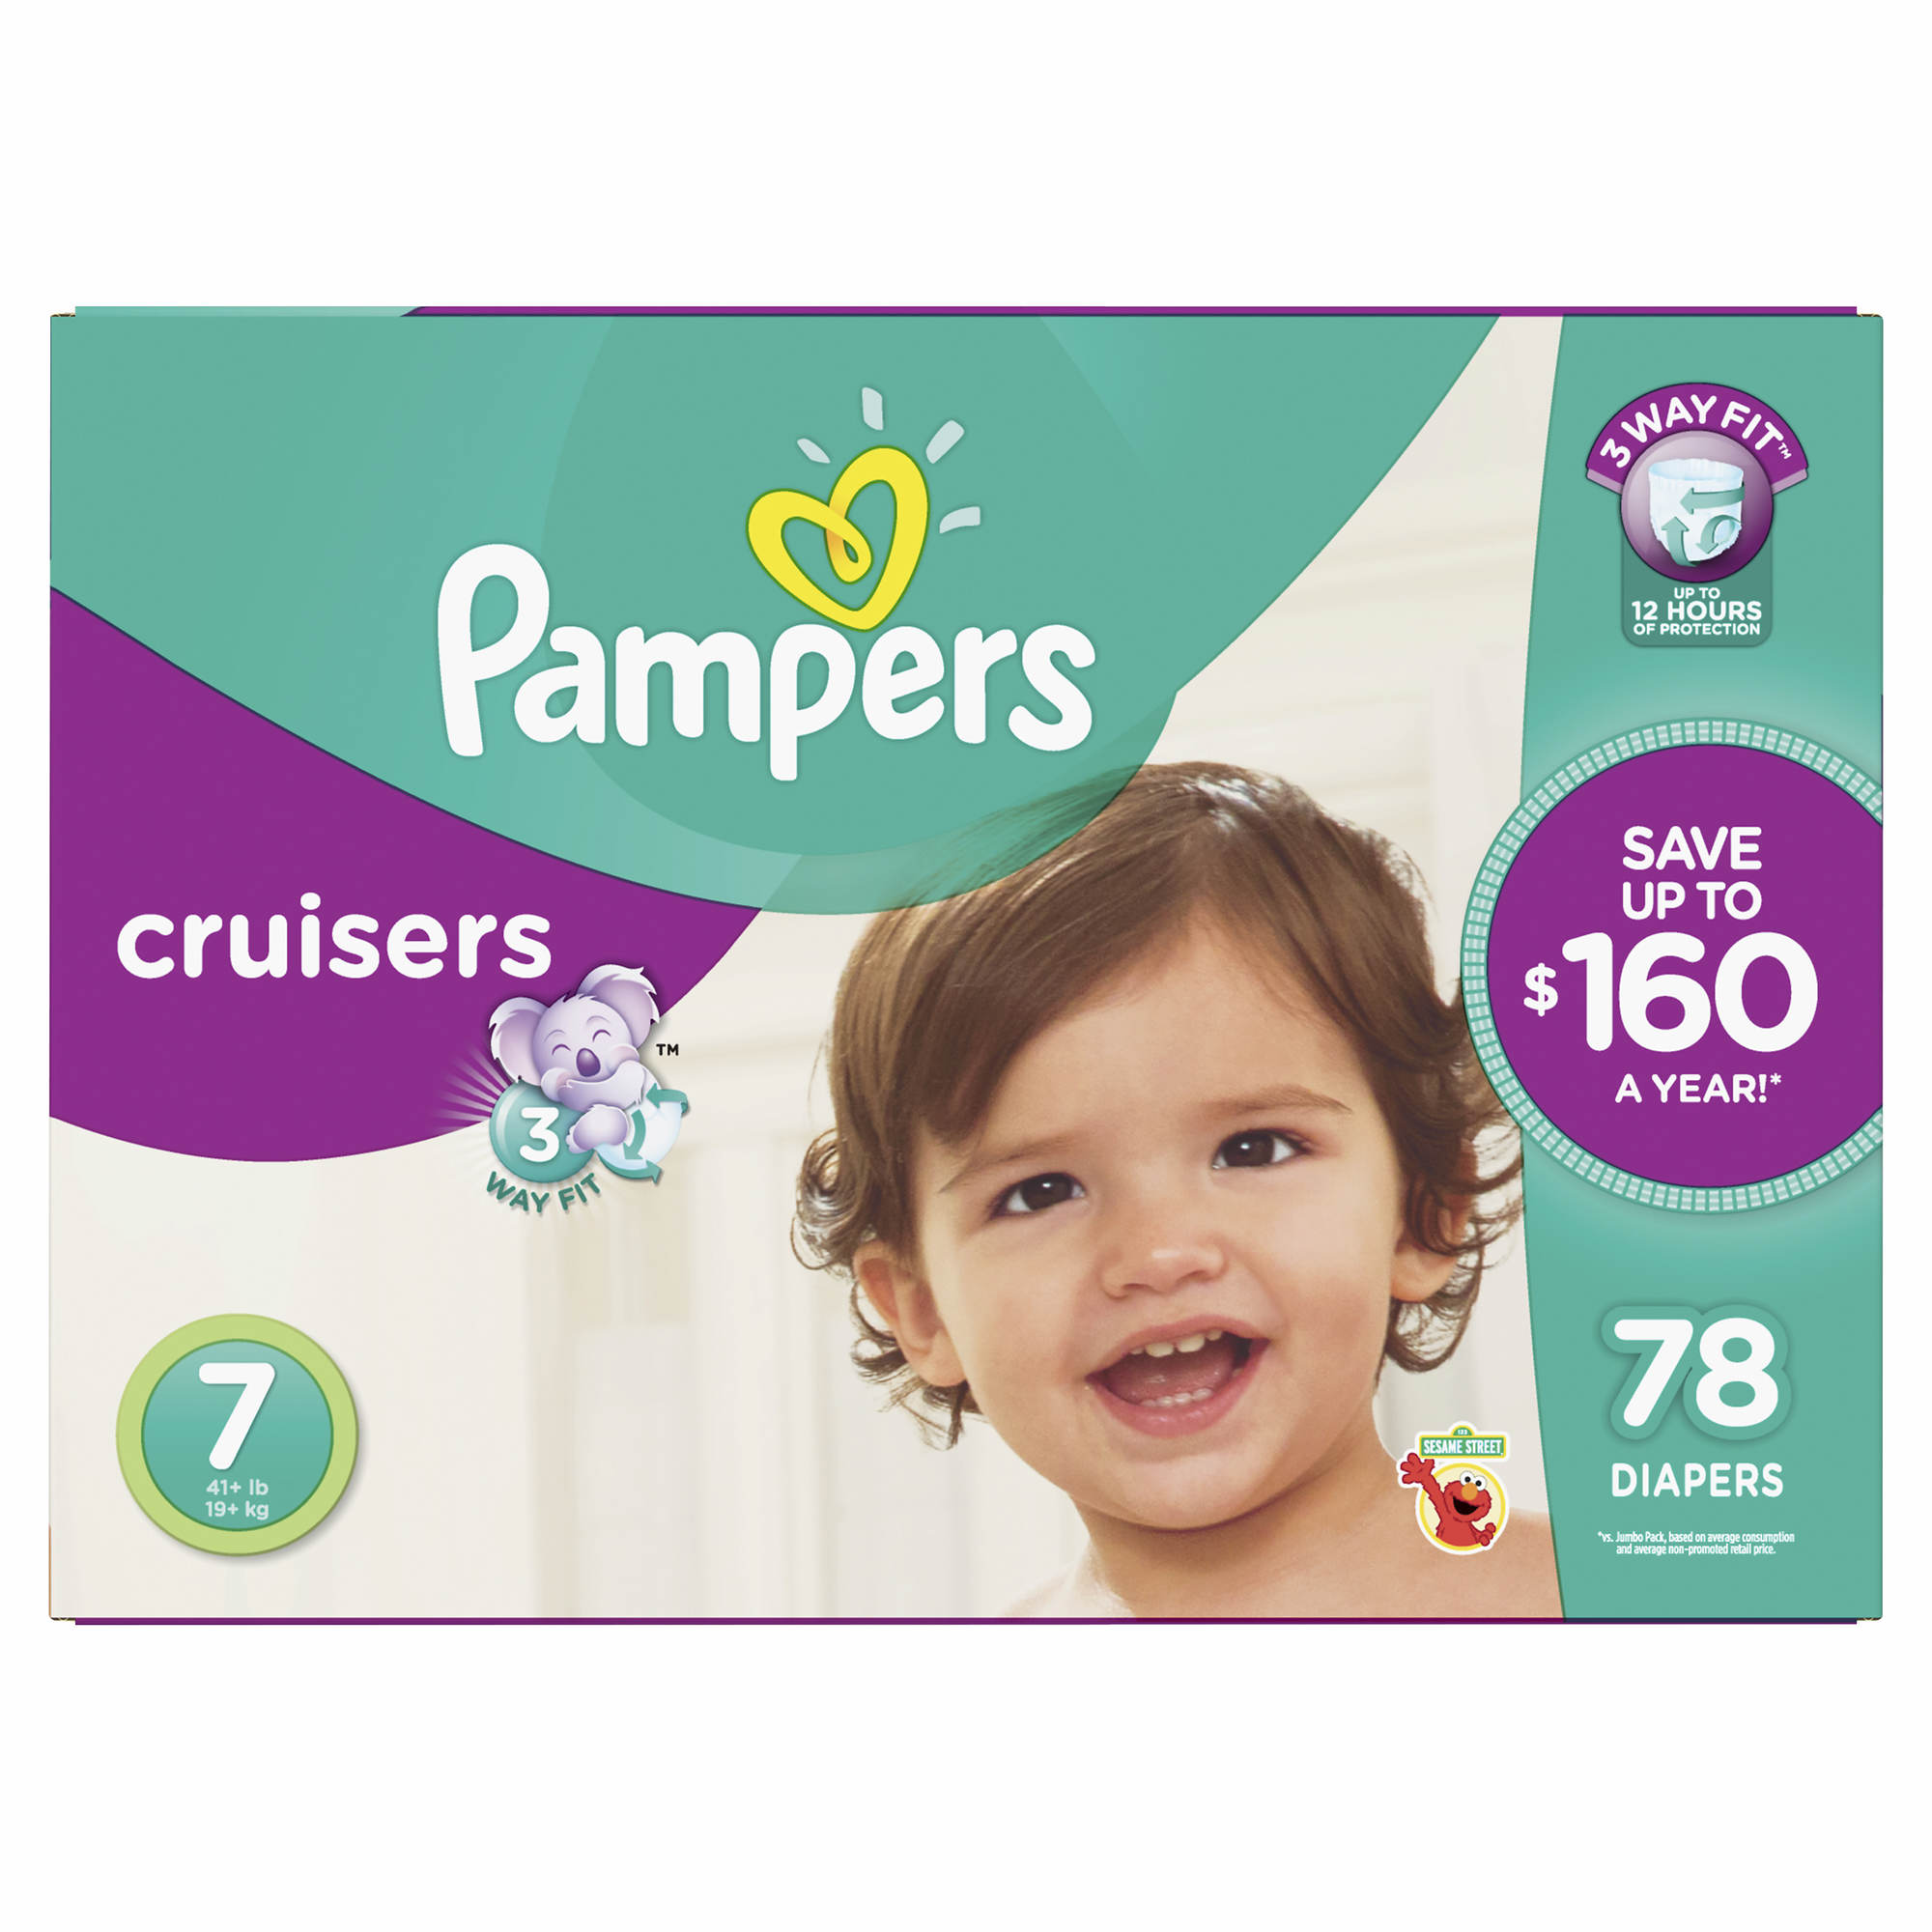 Shop for pampers cruisers size 7 online at Target. Free shipping & returns and save 5% every day with your Target REDcard.